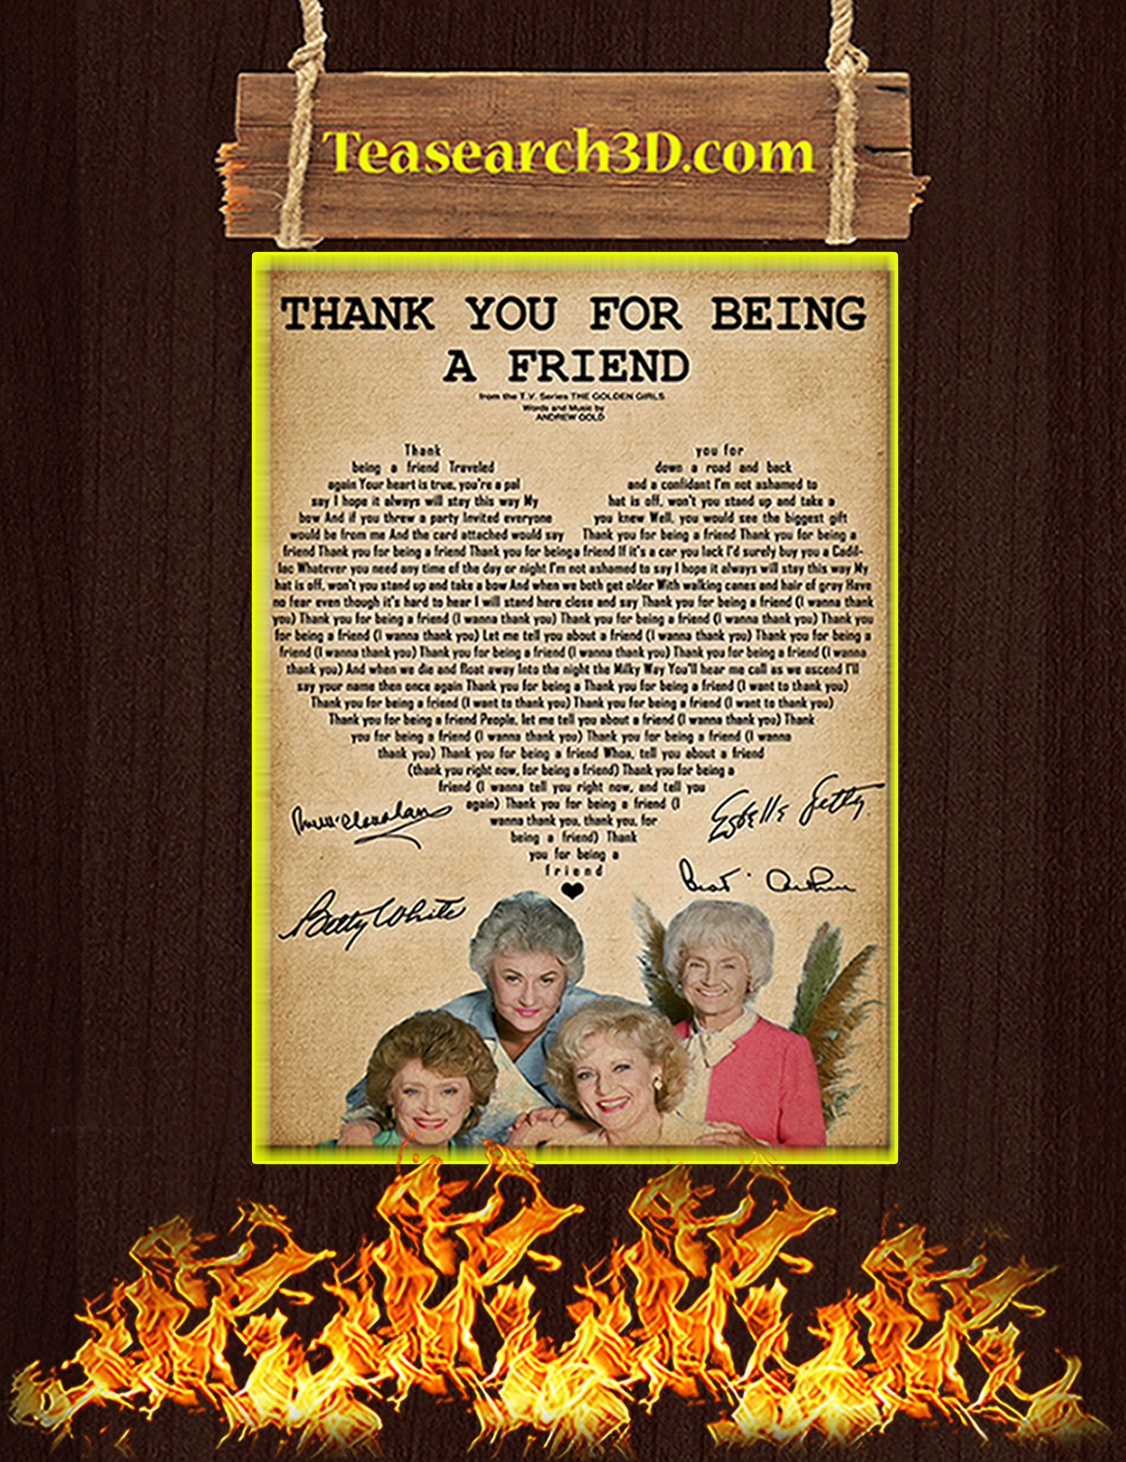 Thank you for being a friend golden girls poster A3